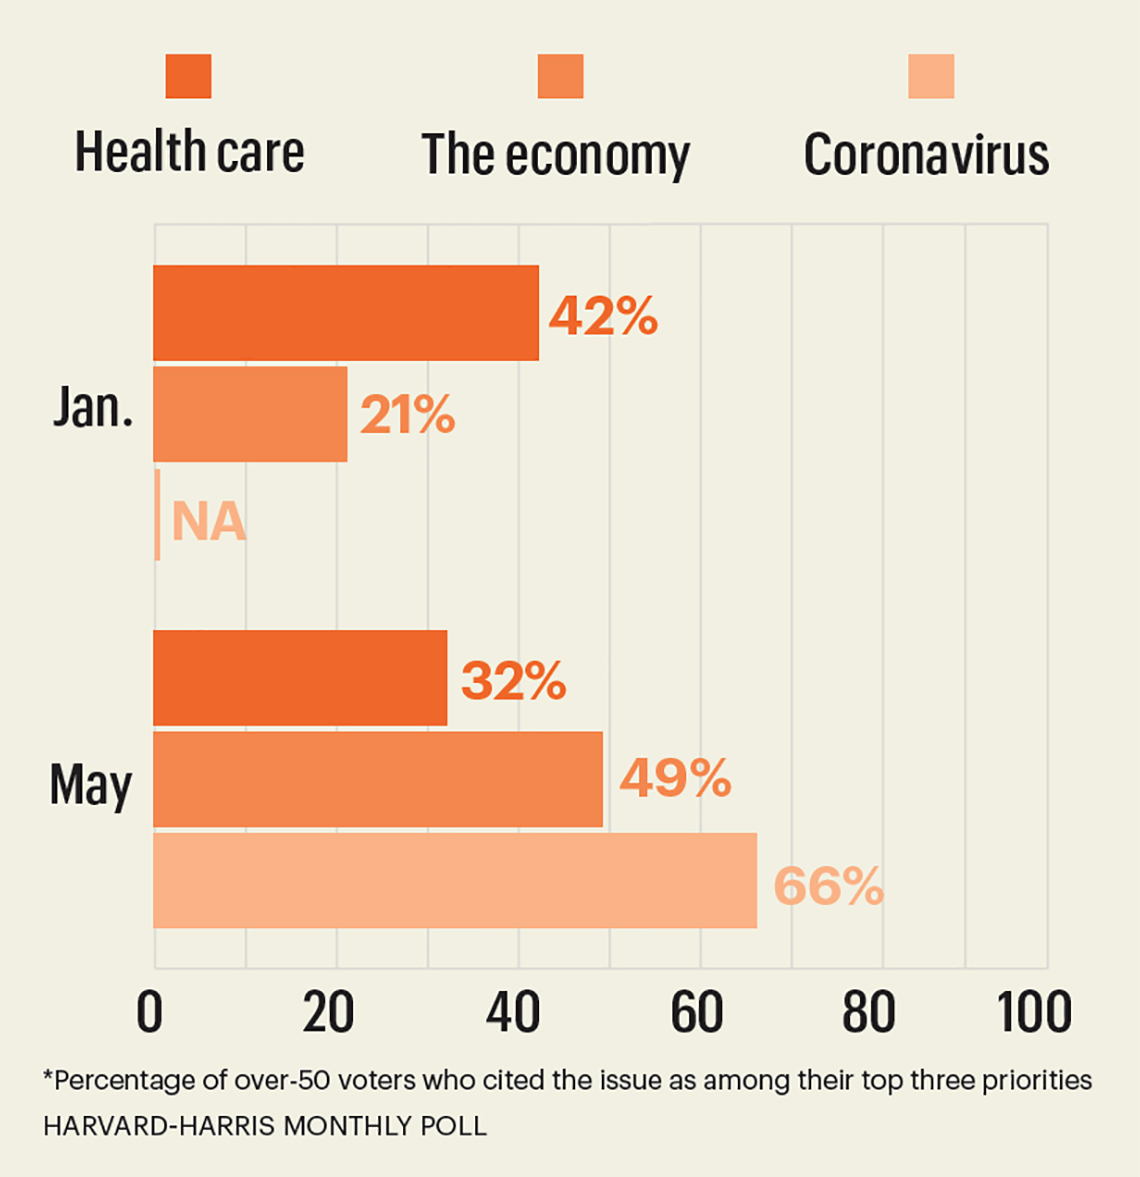 chart of top three issues for voters in january compared to may the coronavirus went from no concern to a big concern